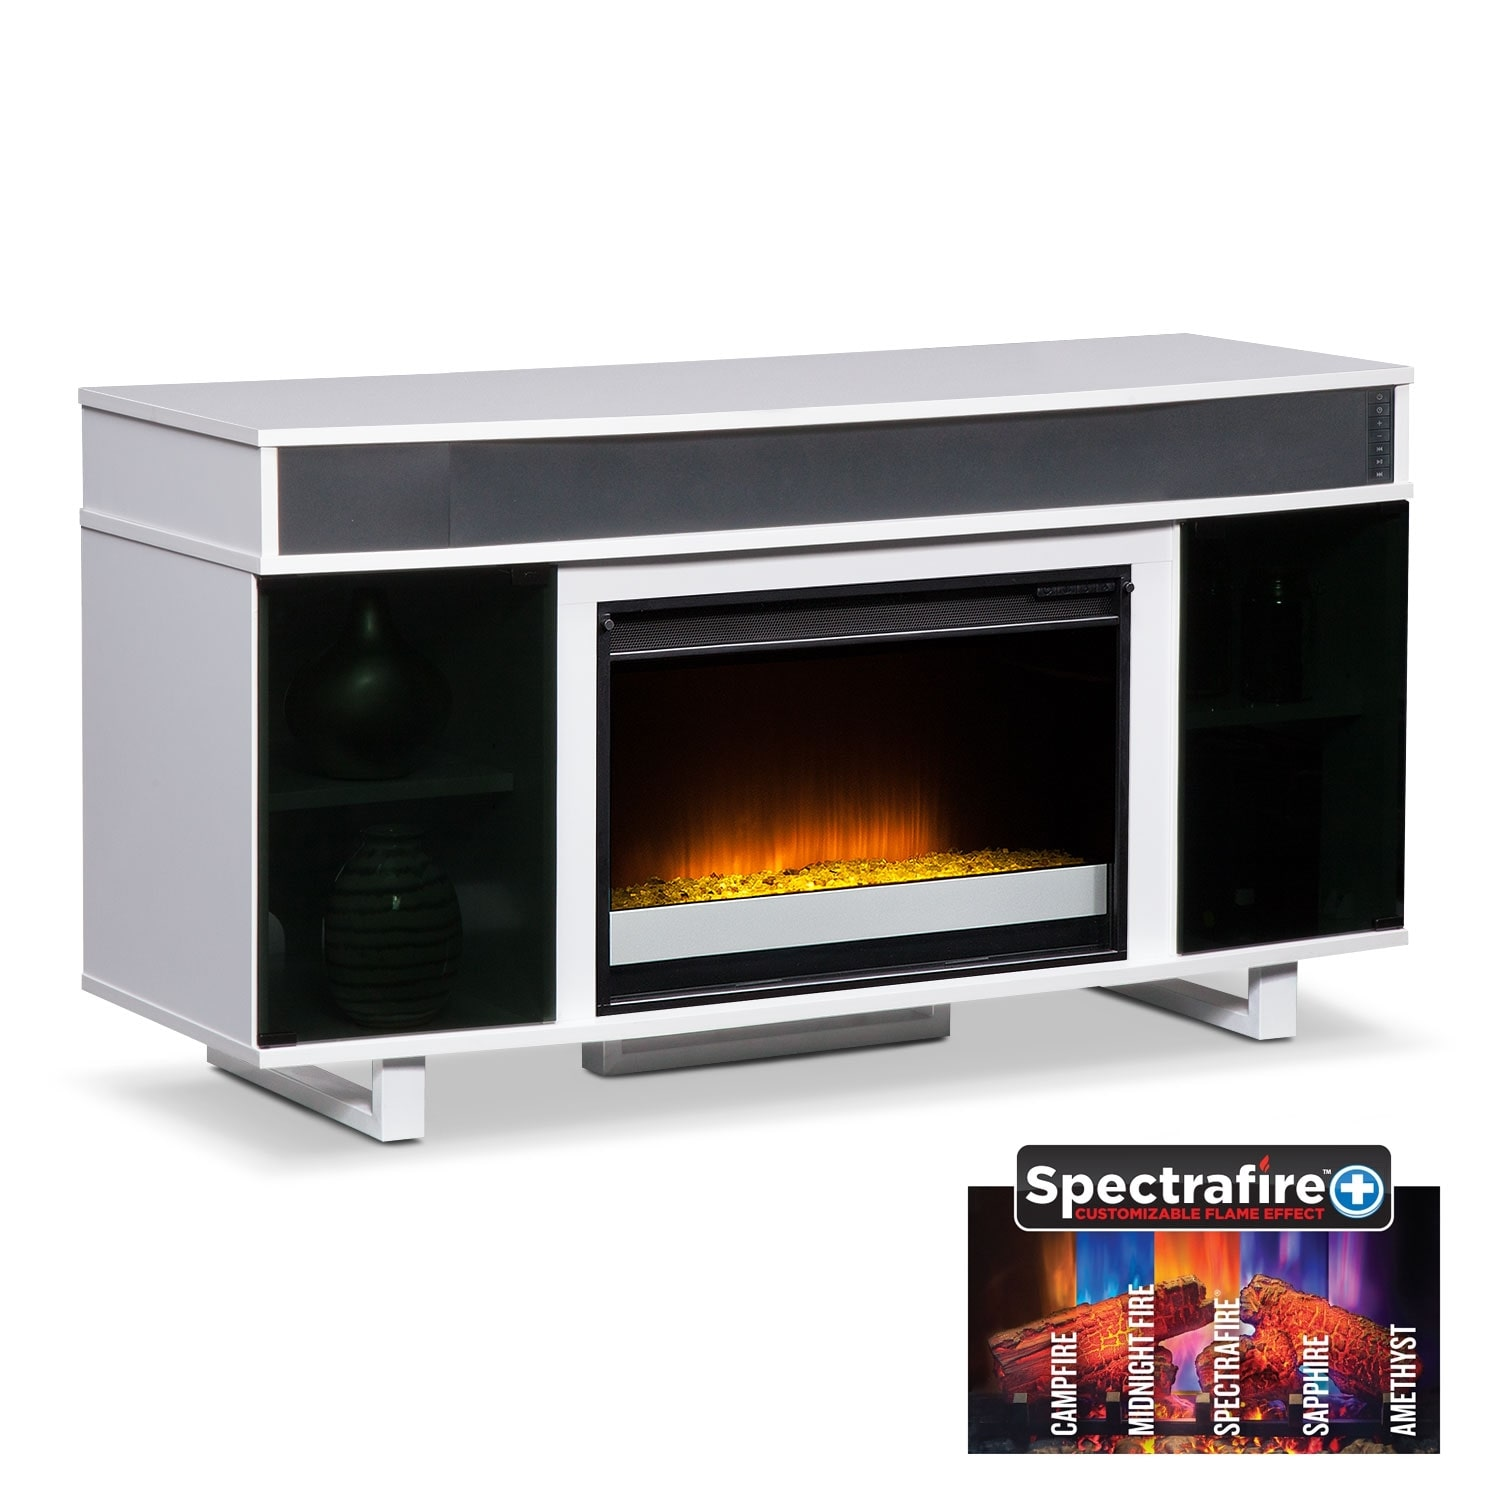 pacer  contemporary fireplace tv stand with sound bar  white  -  contemporary fireplace tv stand with sound bar  white hover to zoom